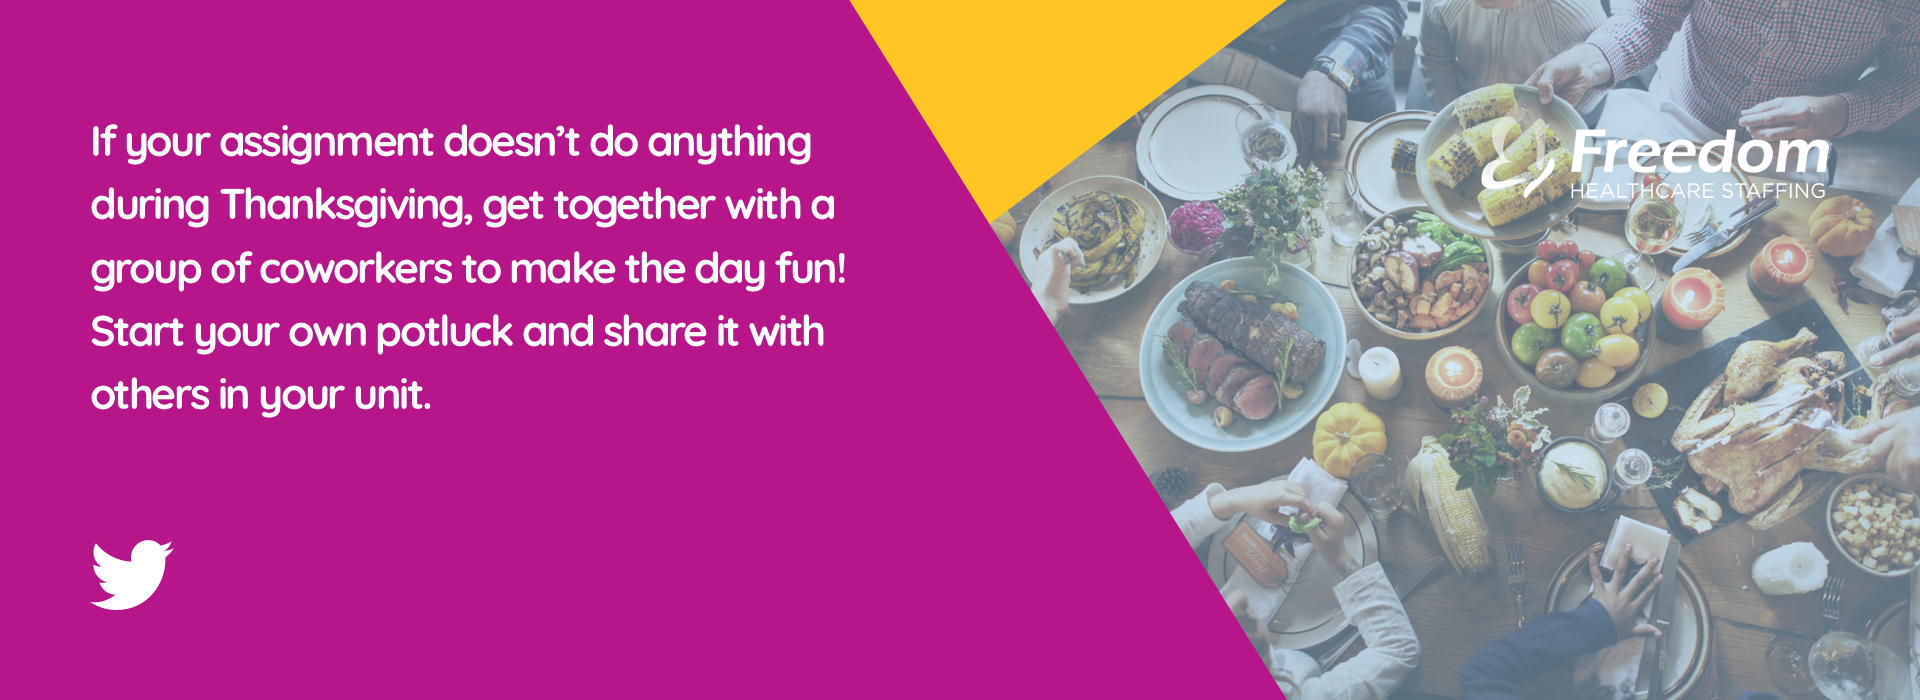 If your assignment doesn't do anything during Thanksgiving, get together with a group of coworkers to make the day fun! Start your own potluck and share it with others in your unit.